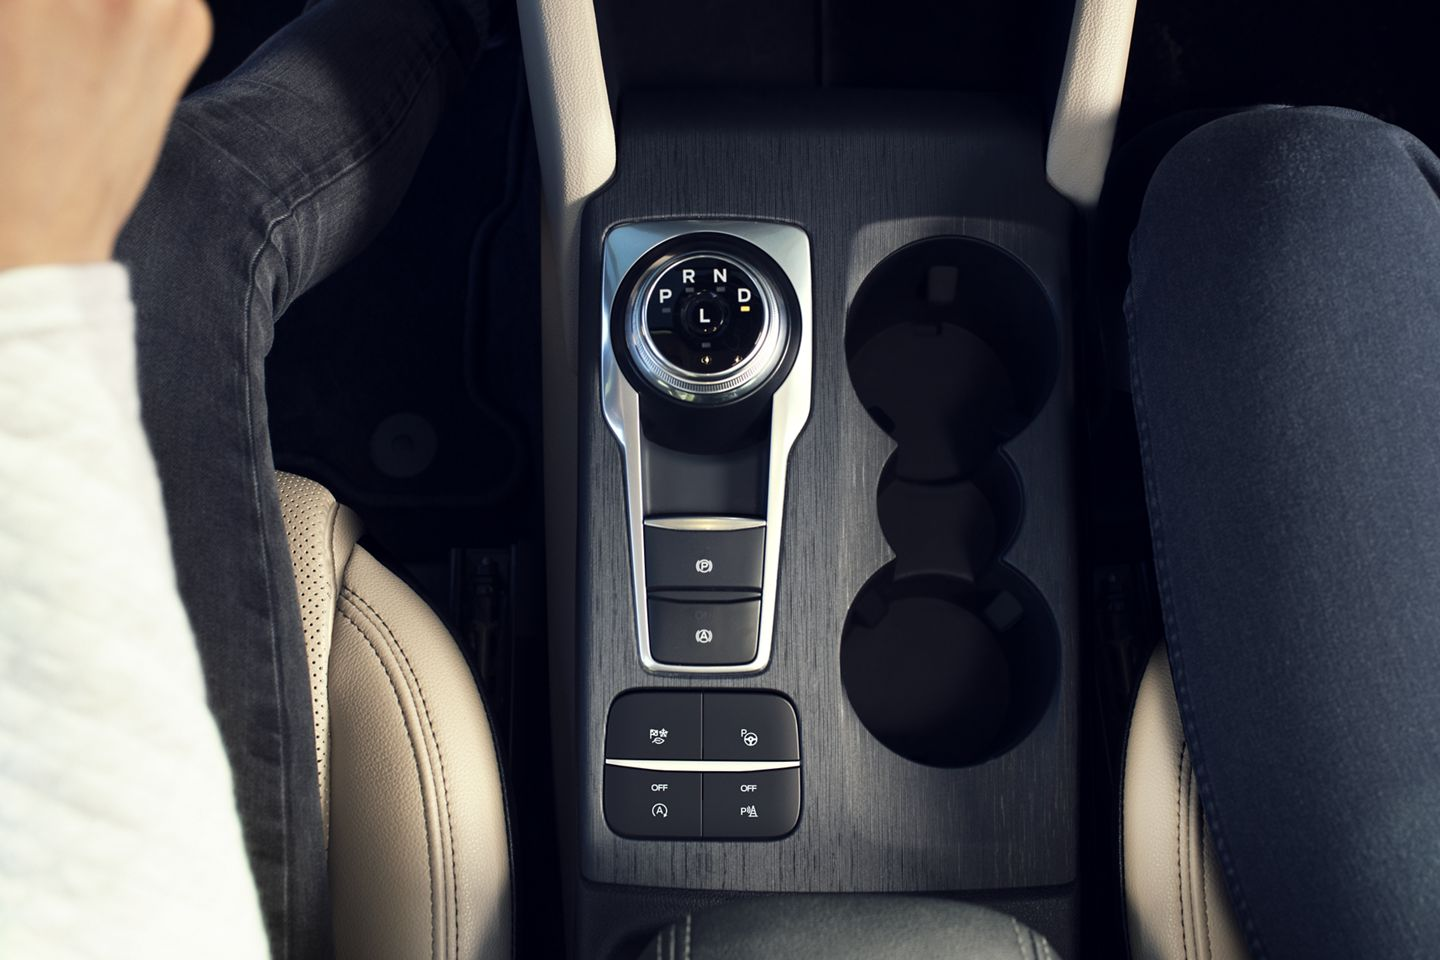 2020 Ford Escape Interior Rotary Gear Shift Detail Picture.